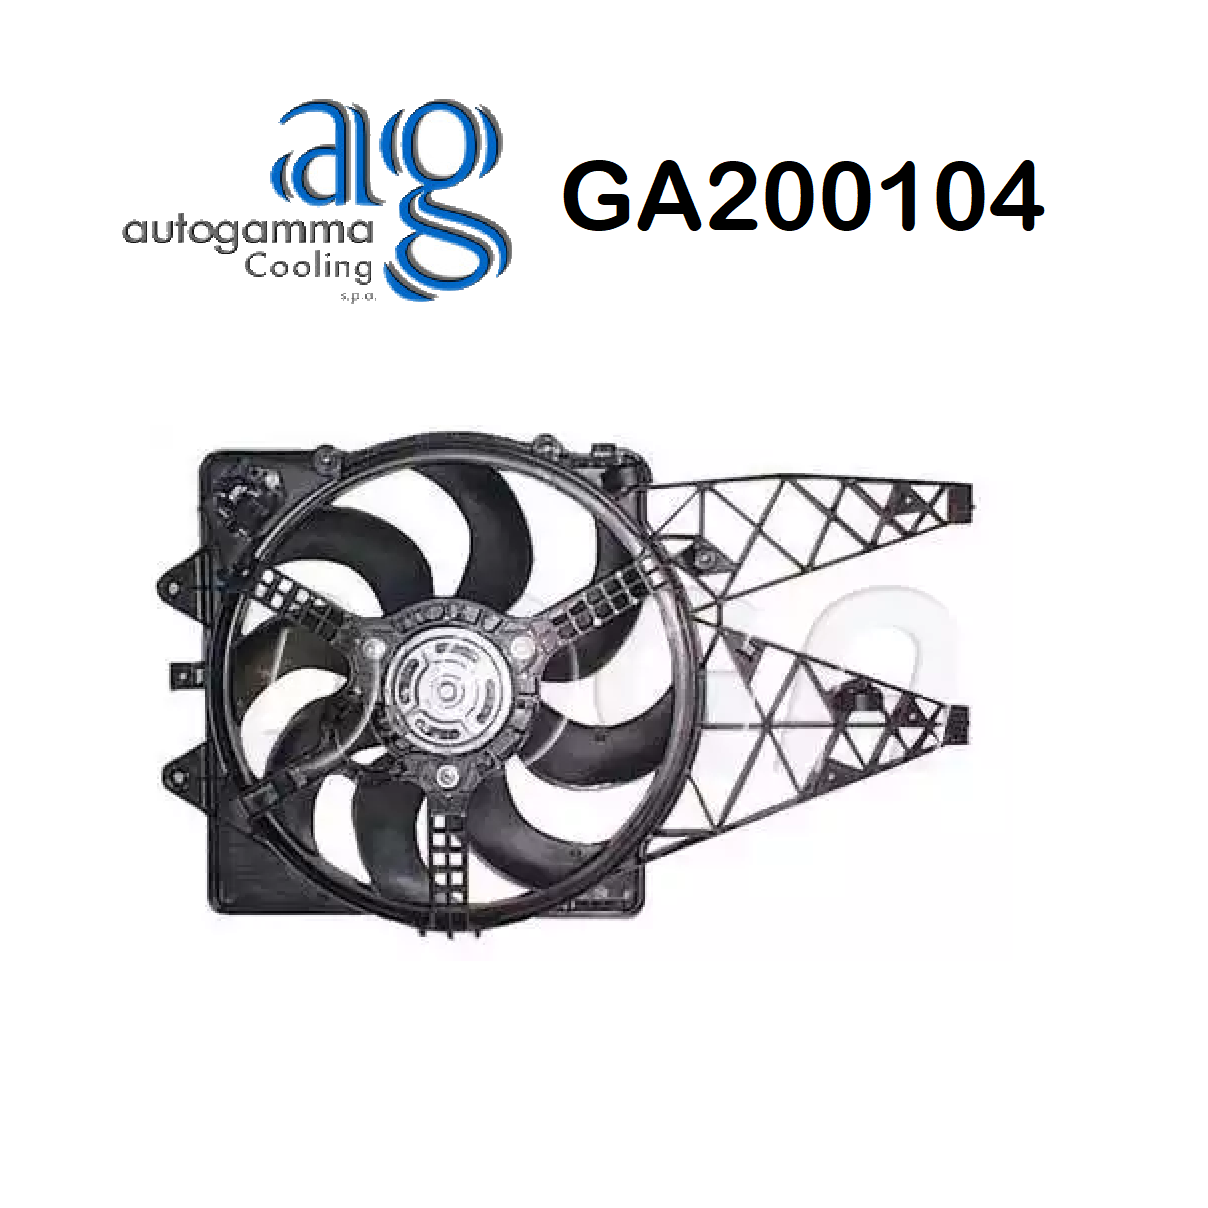 FIAT PUNTO ENGINE COOLING FAN - GRANDE PUNTO AUTOGAMMA FOR 55700342